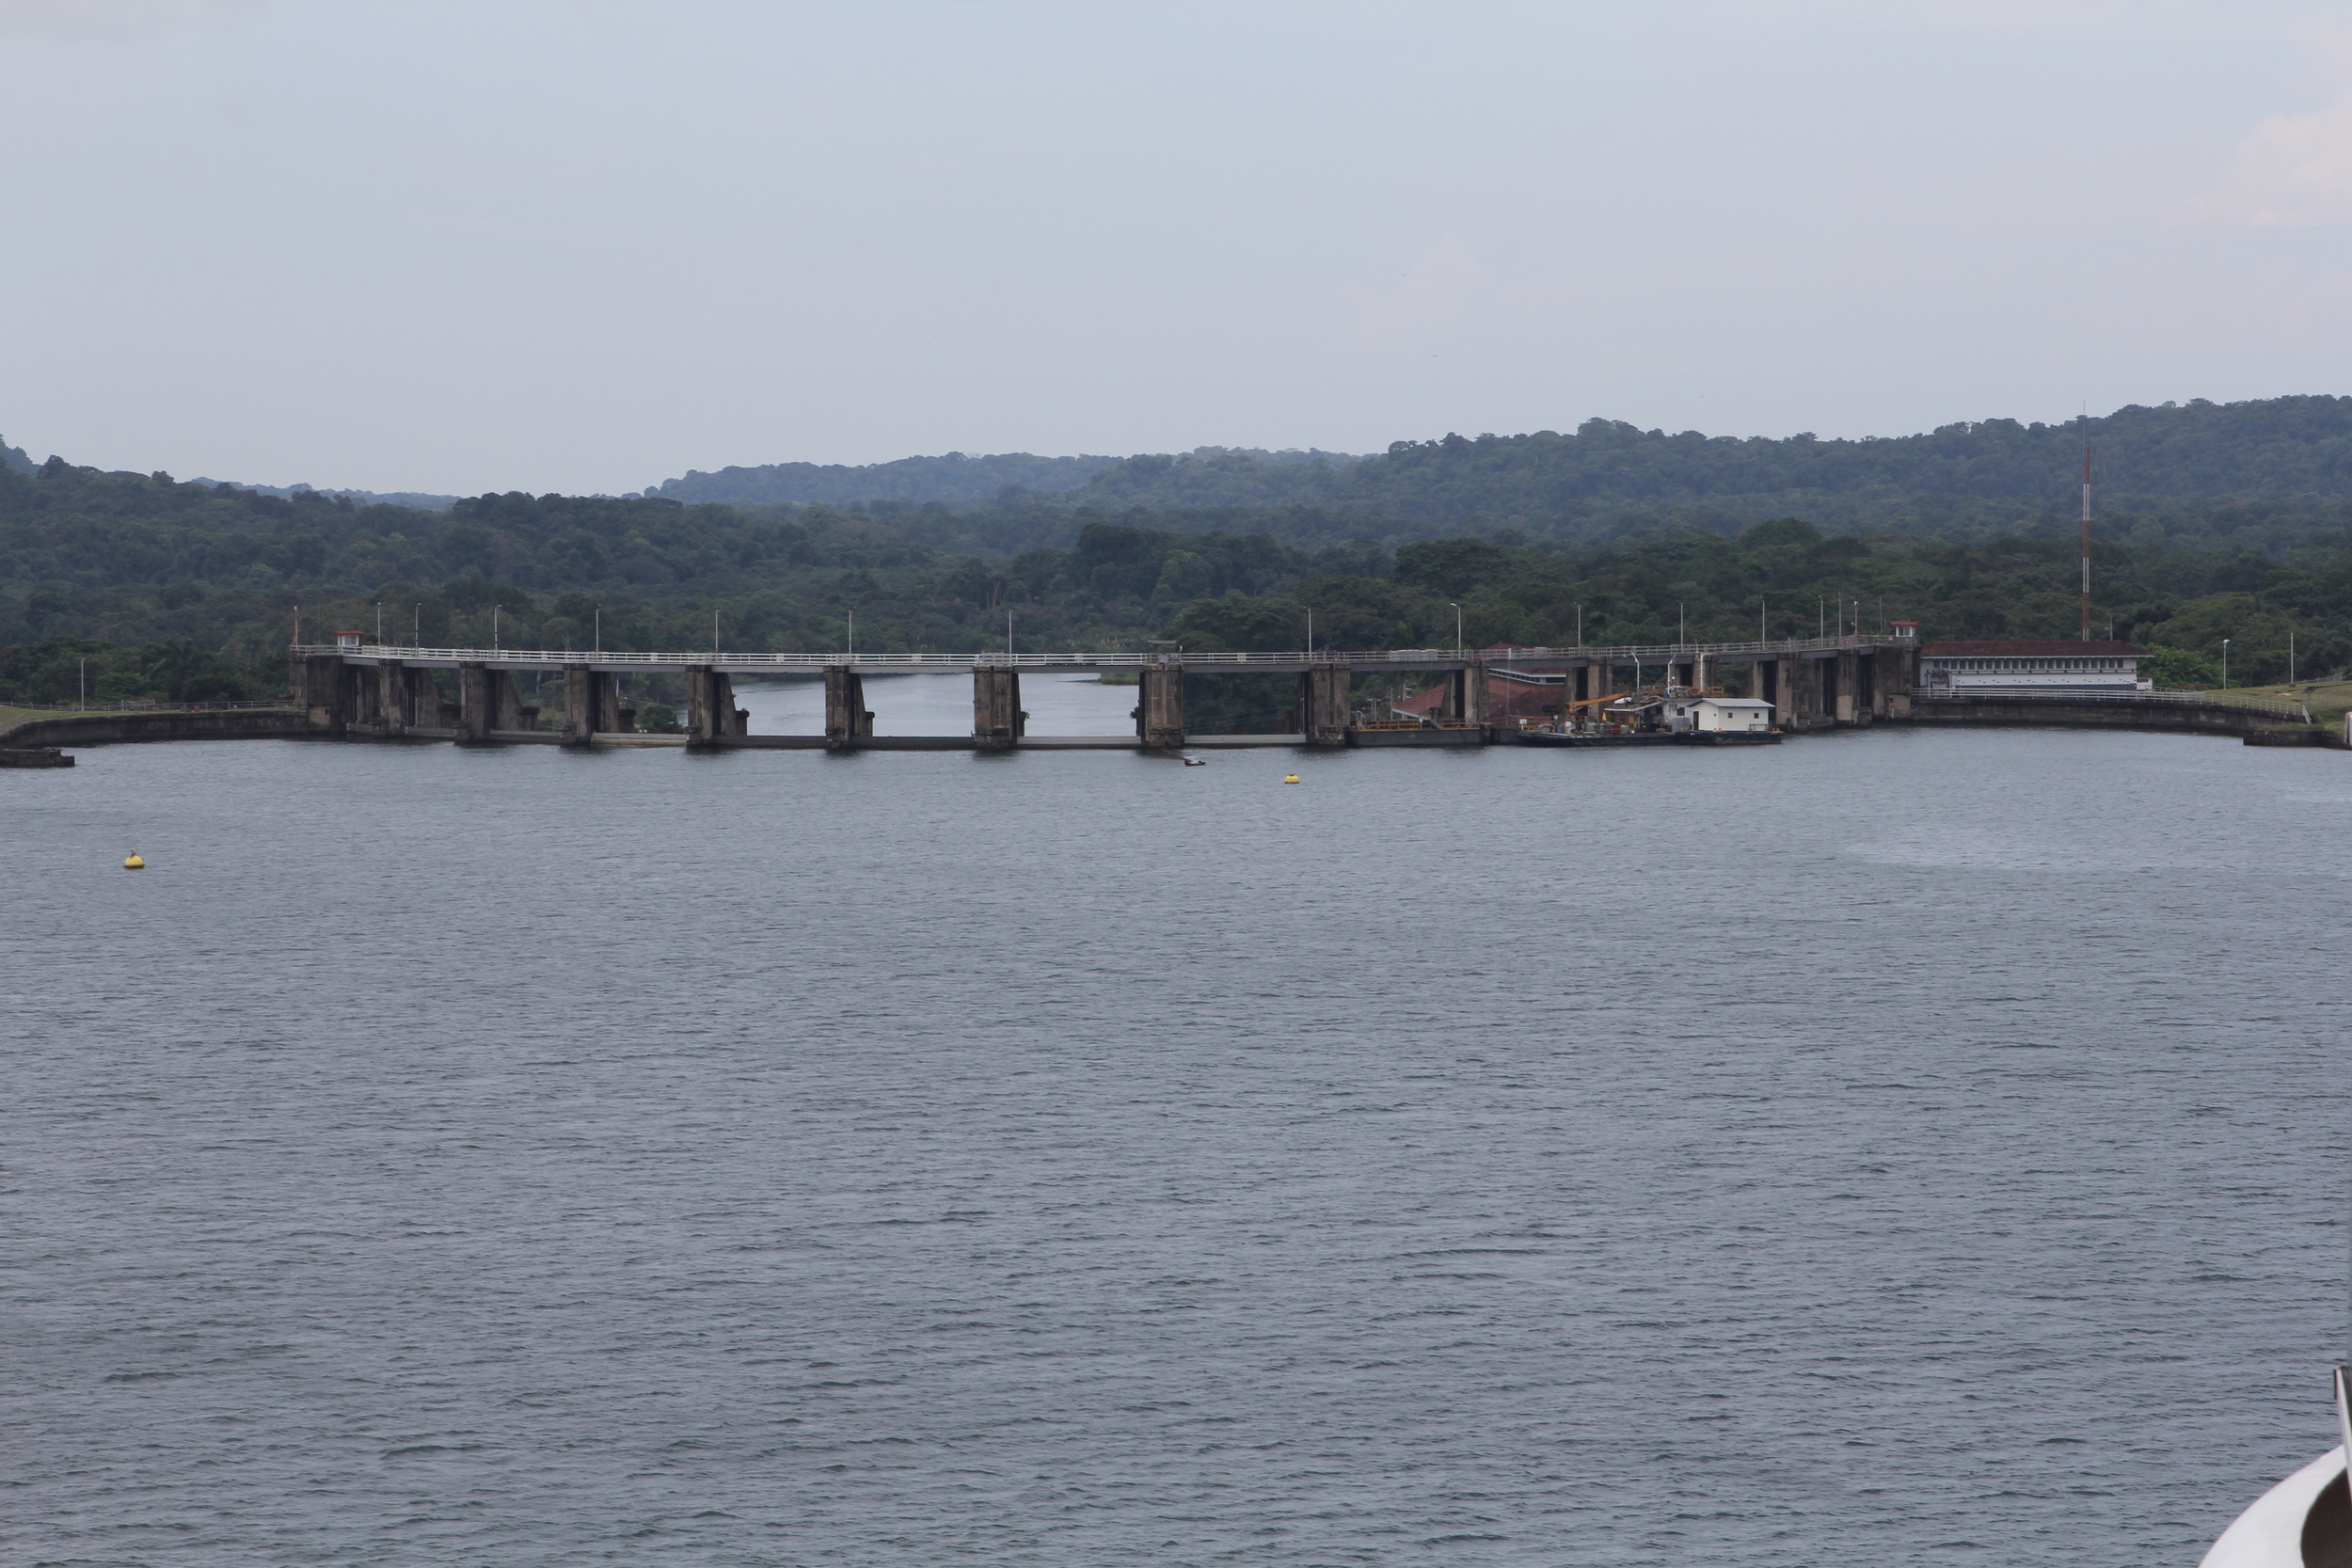 The Dam that created the lake